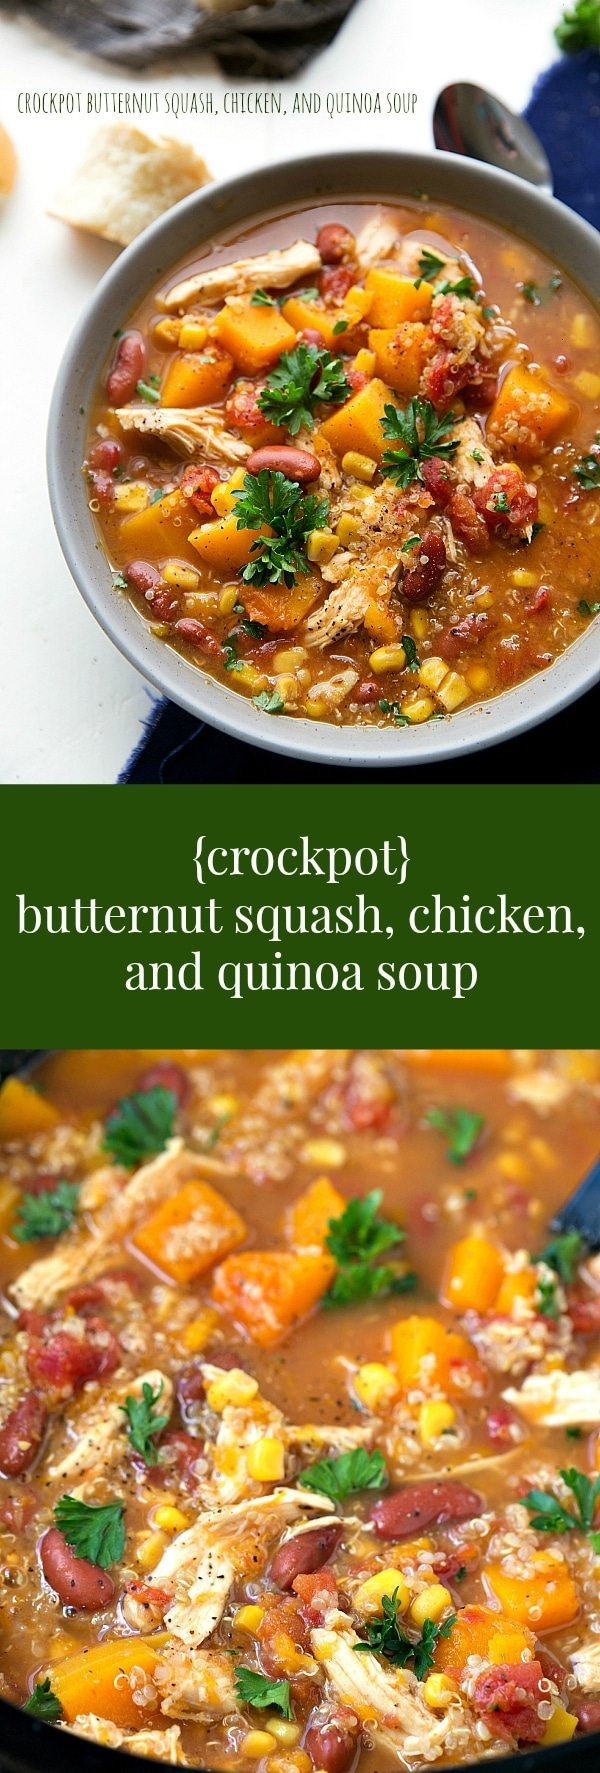 Dump it and forget it!! A super simple slow cooker butternut squash, chicken, and quinoa soup. The crockpot does all the work!